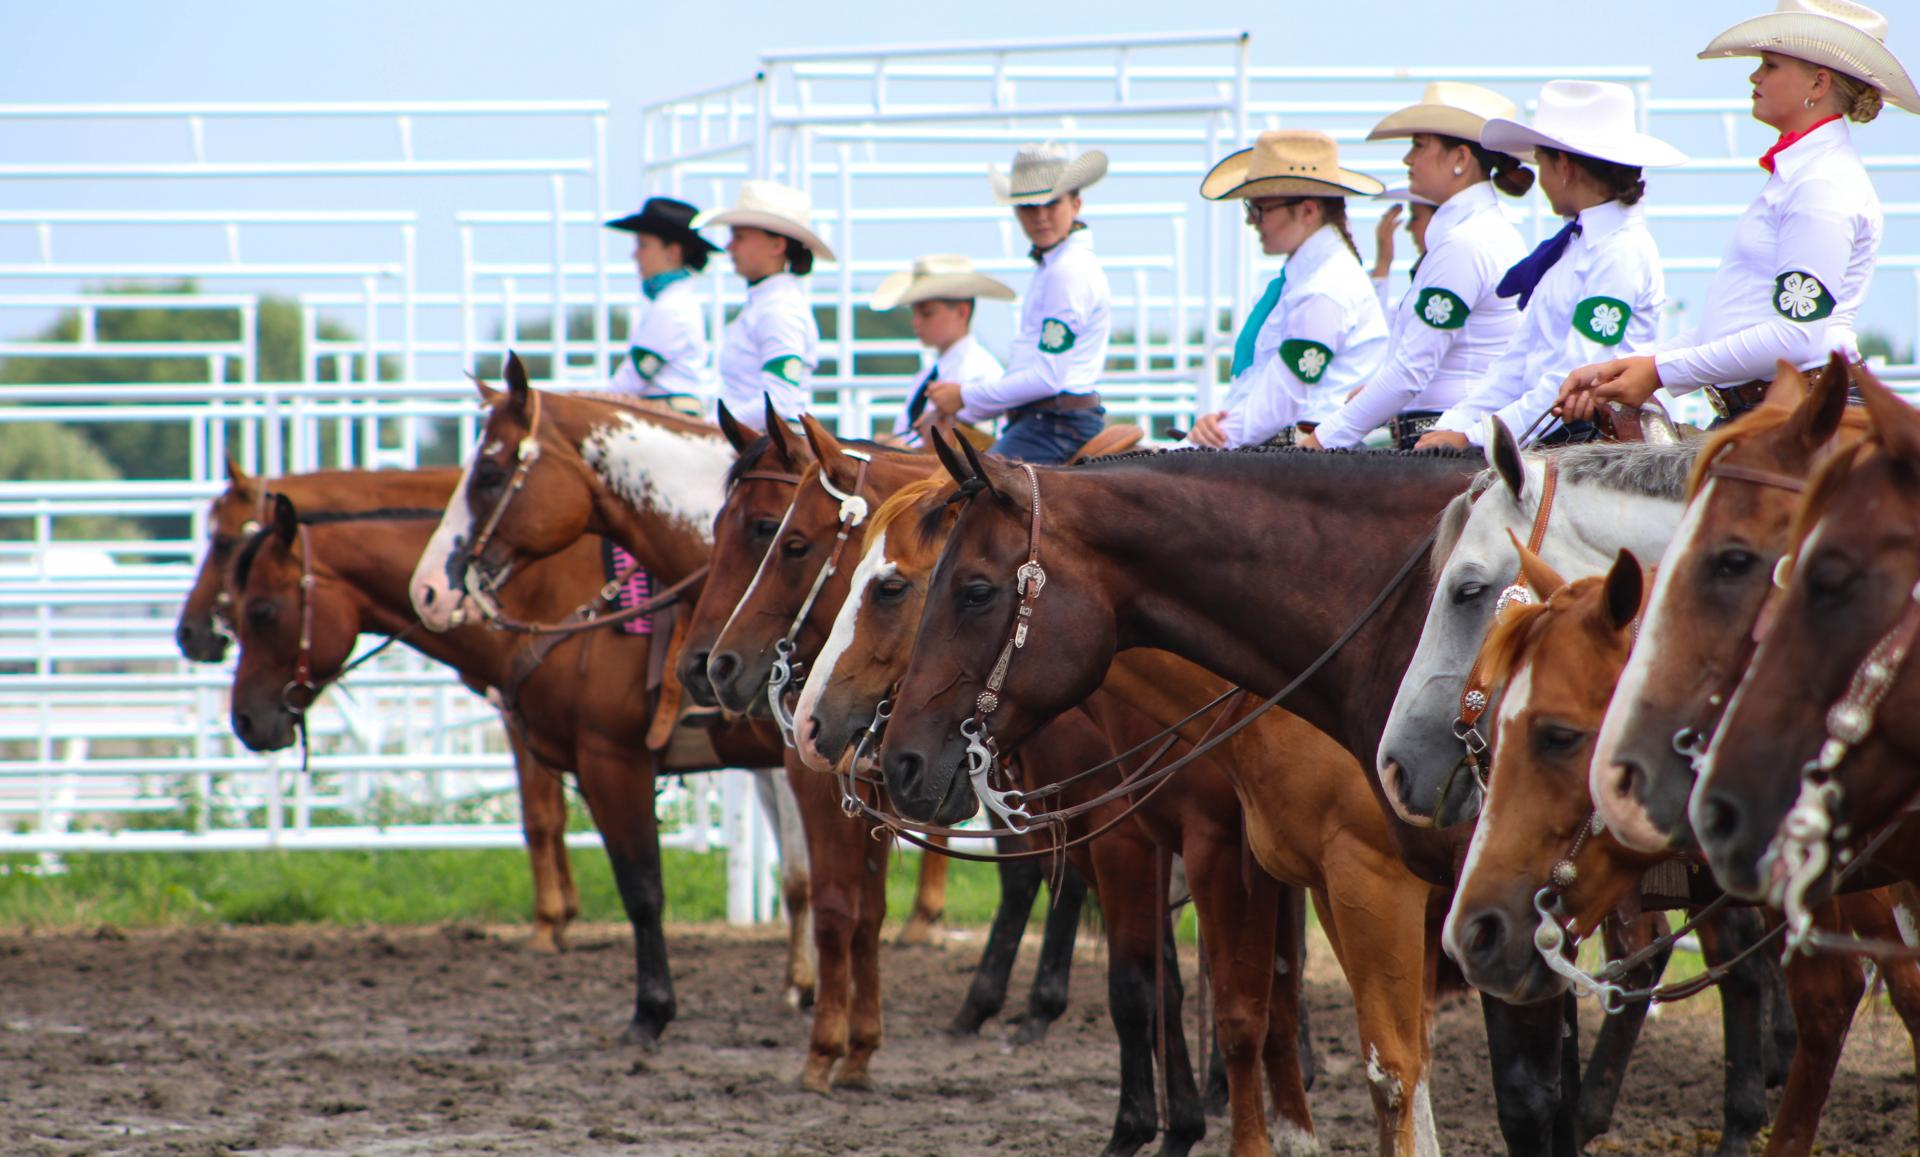 4-H youth riding horses in arena